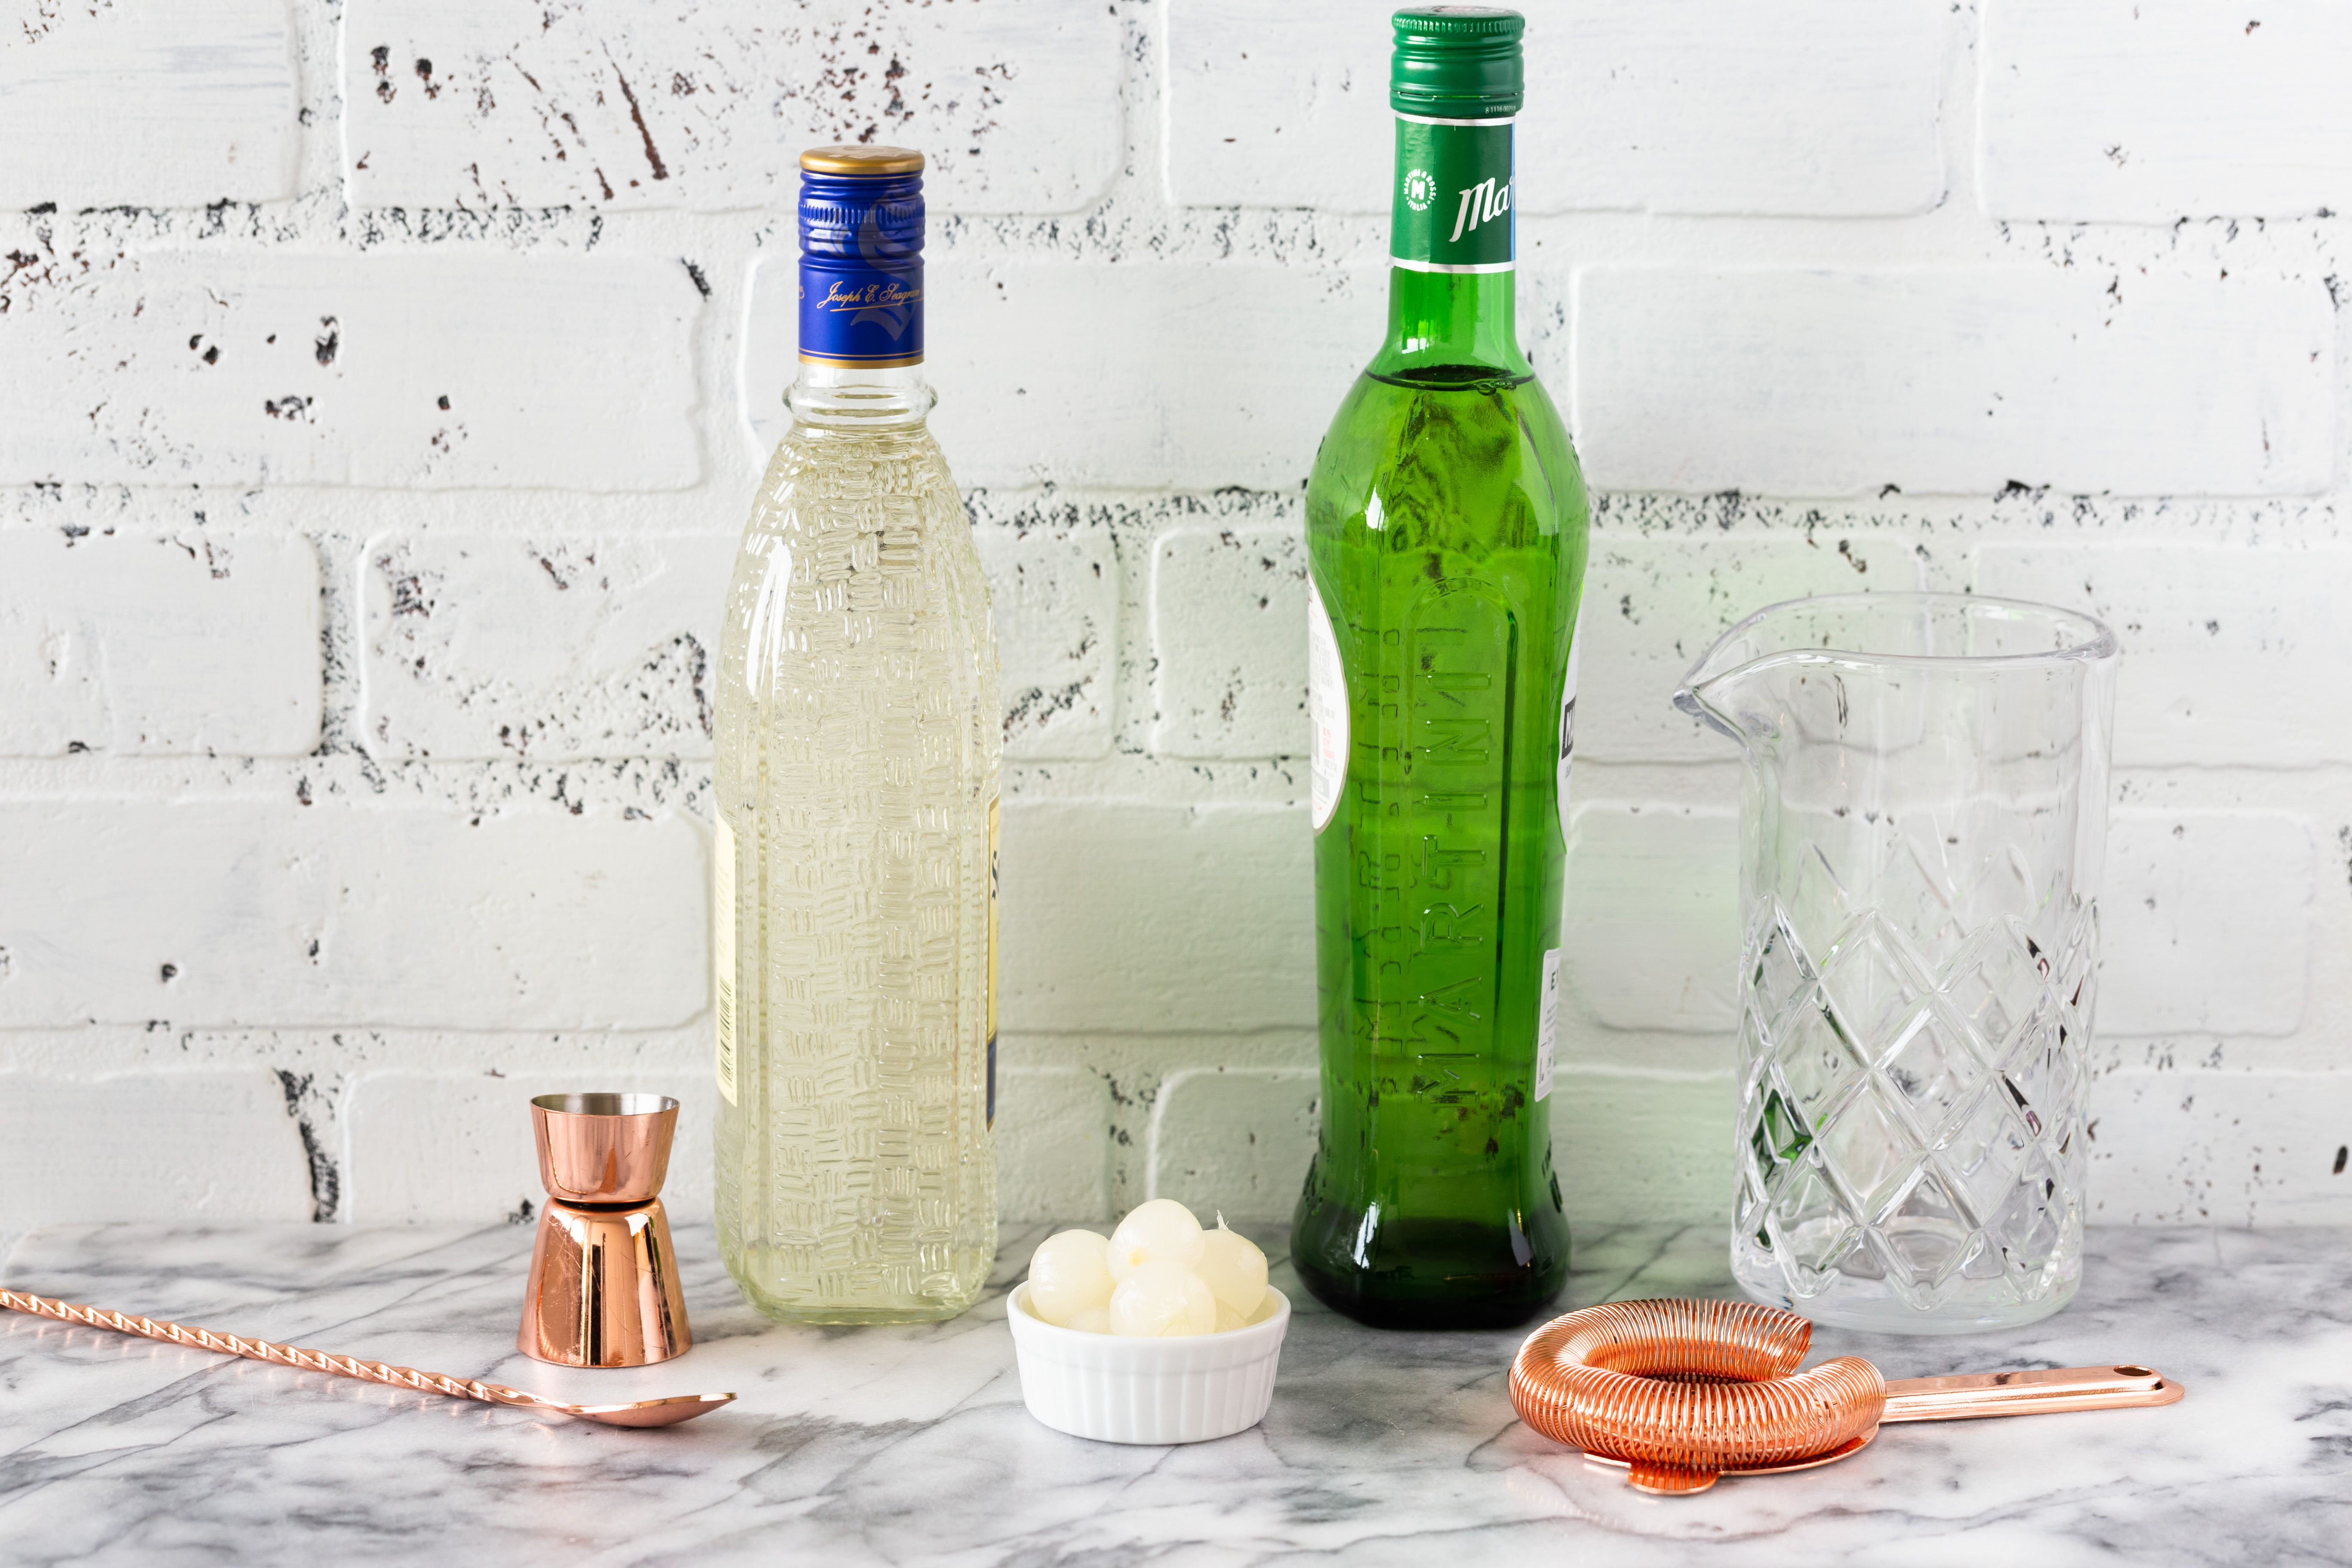 Ingredients for making a Gibson gin martini cocktail